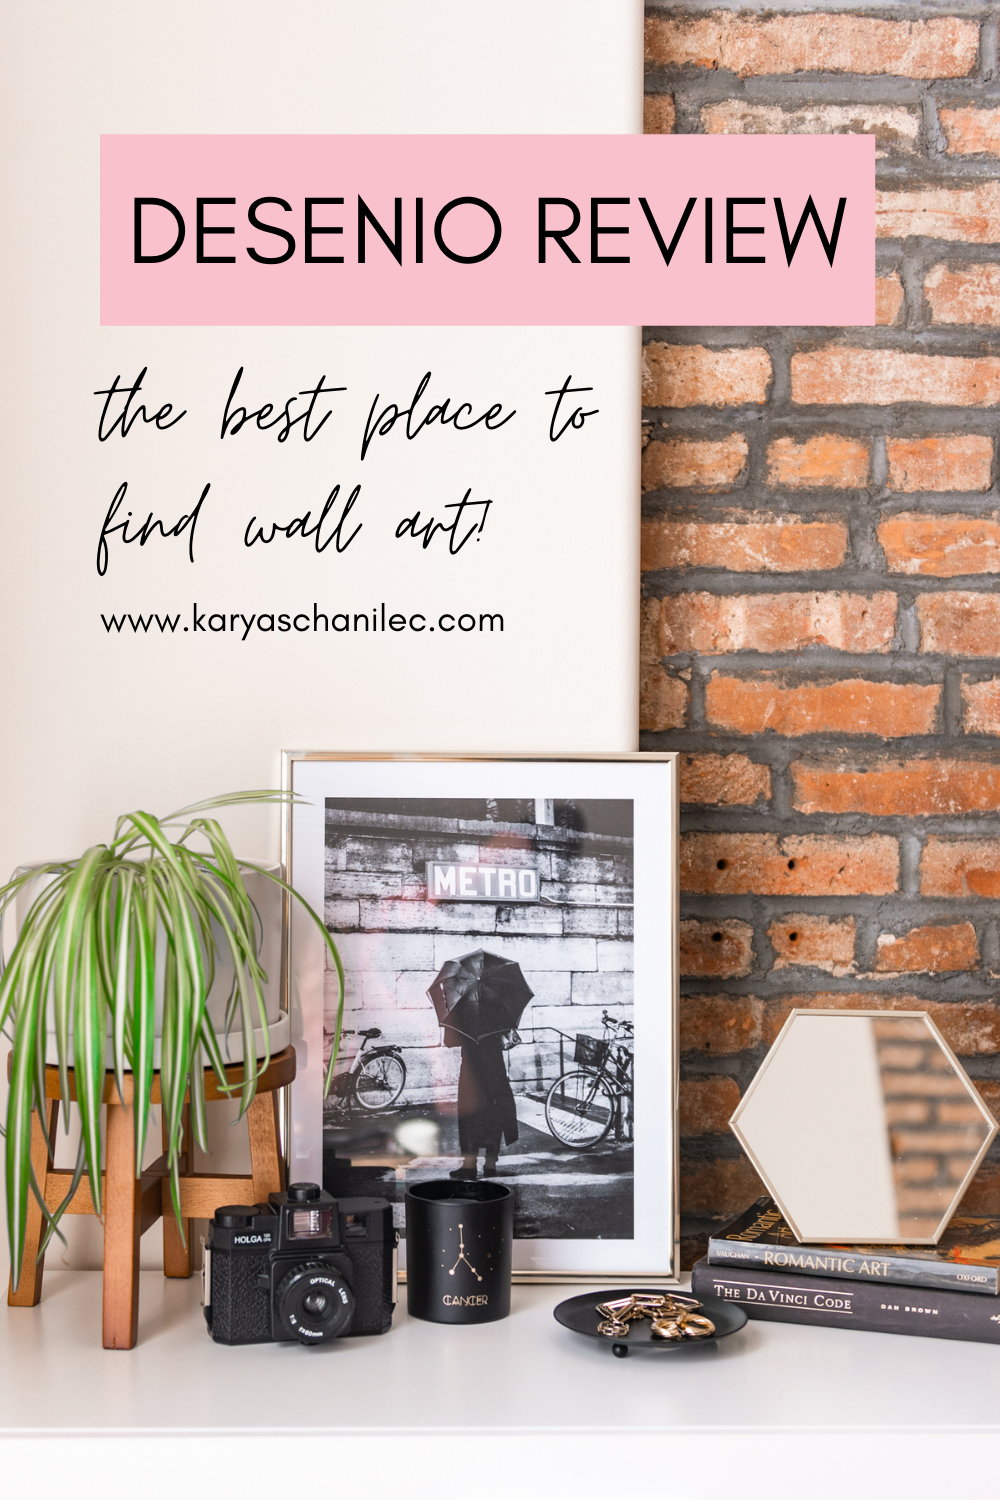 Desenio Review - the best place to find high quality wall art - Karya Schanilec Photography